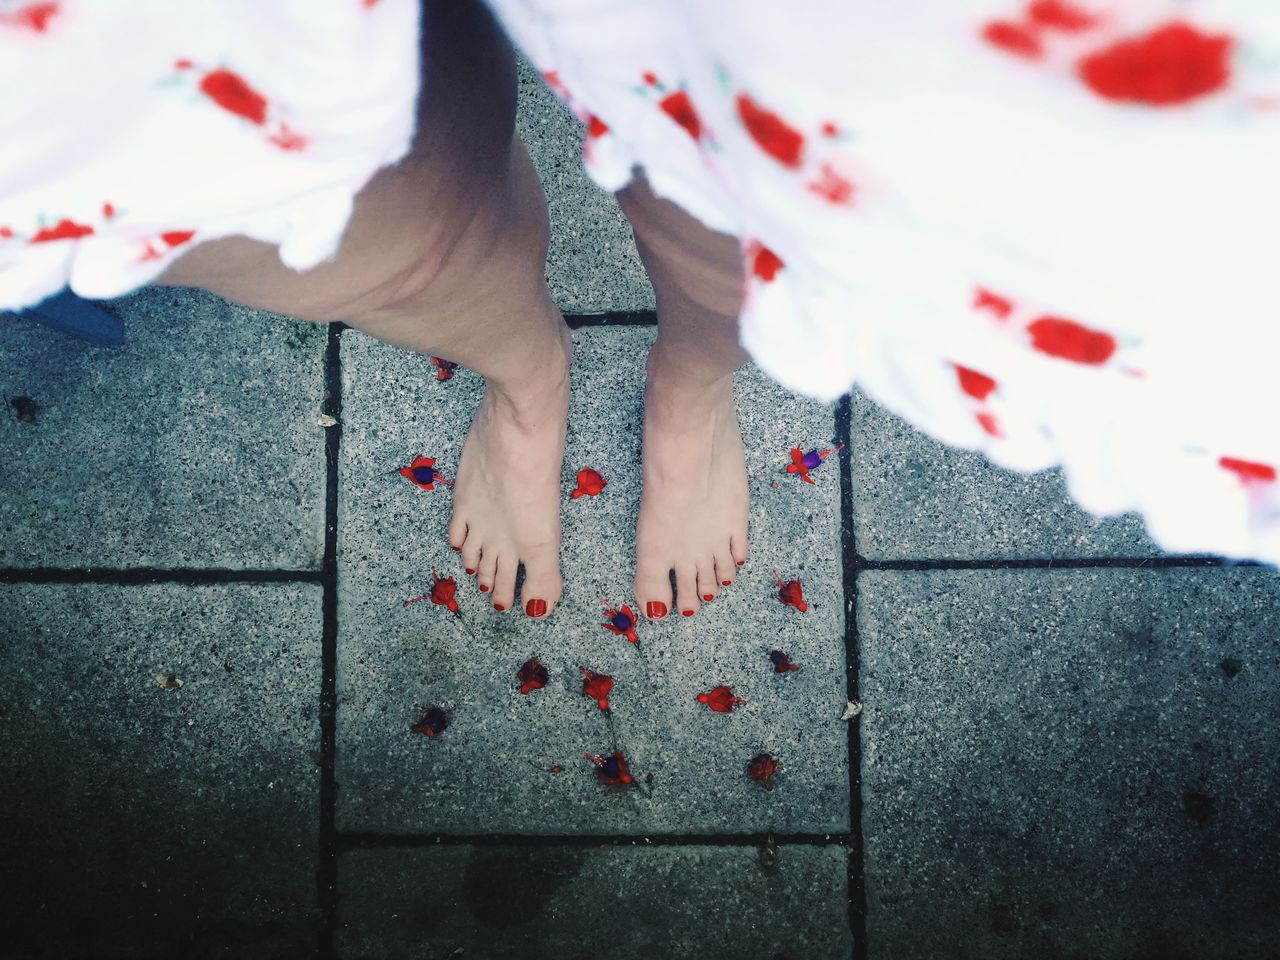 Fallen flowers... Low Section Human Leg One Person Barefoot Human Body Part People One Woman Only Red One Young Woman Only Flowers Red Flowers Runner Runners View Feet Red Nails Looking Down Neon Life EyeEm Selects